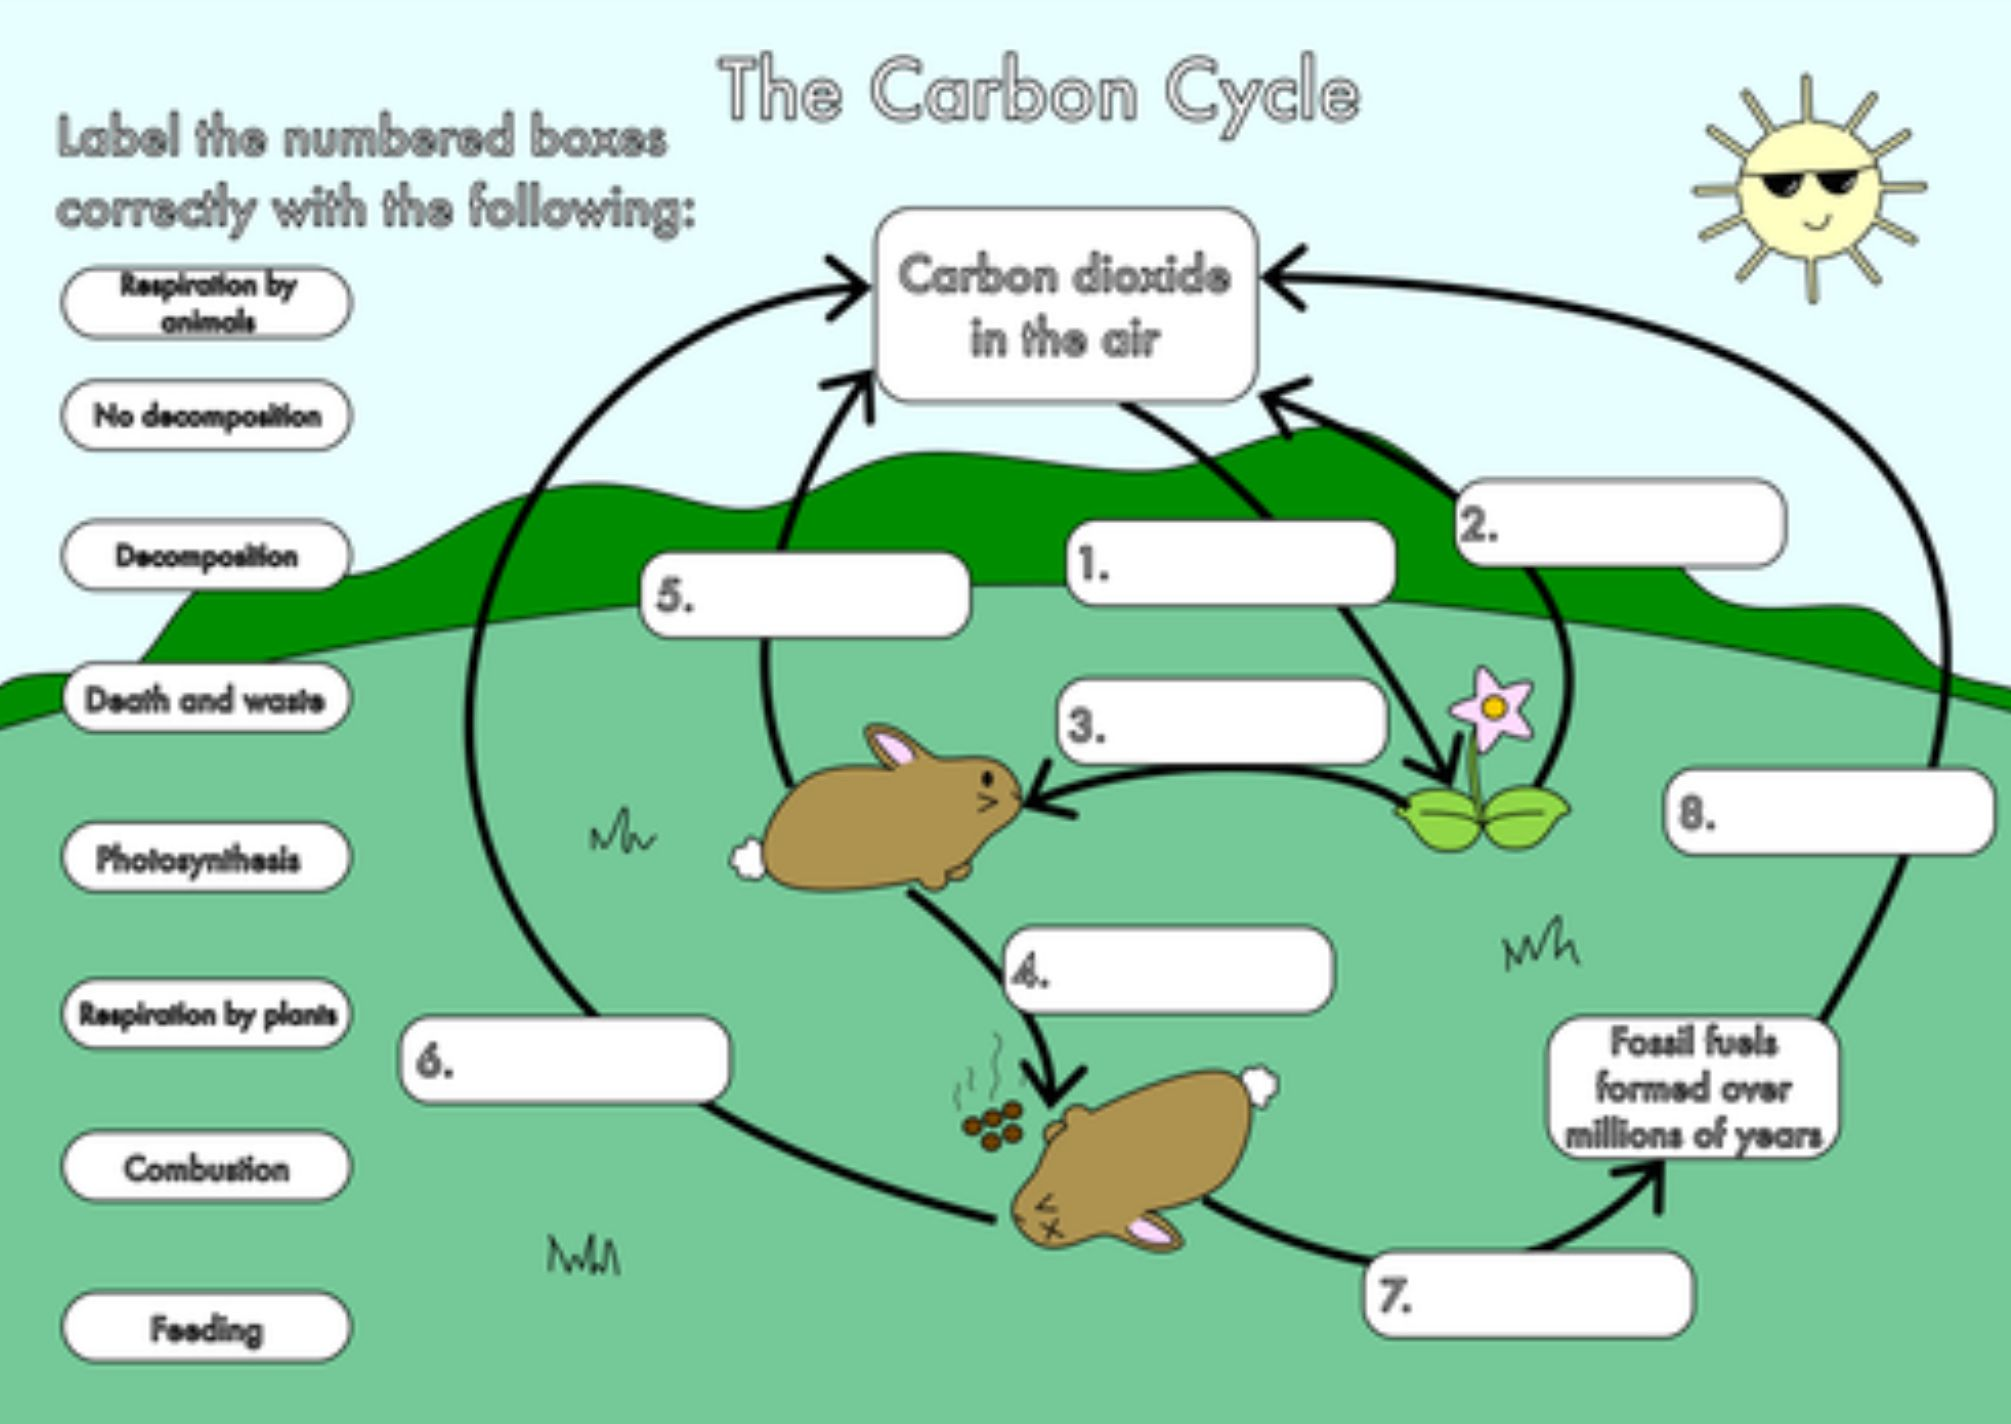 medium resolution of the carbon cycle worksheet 1 thursday may 23 2019 snc1d carbon cycle diagram fill in the blank carbon cycle diagram fill in